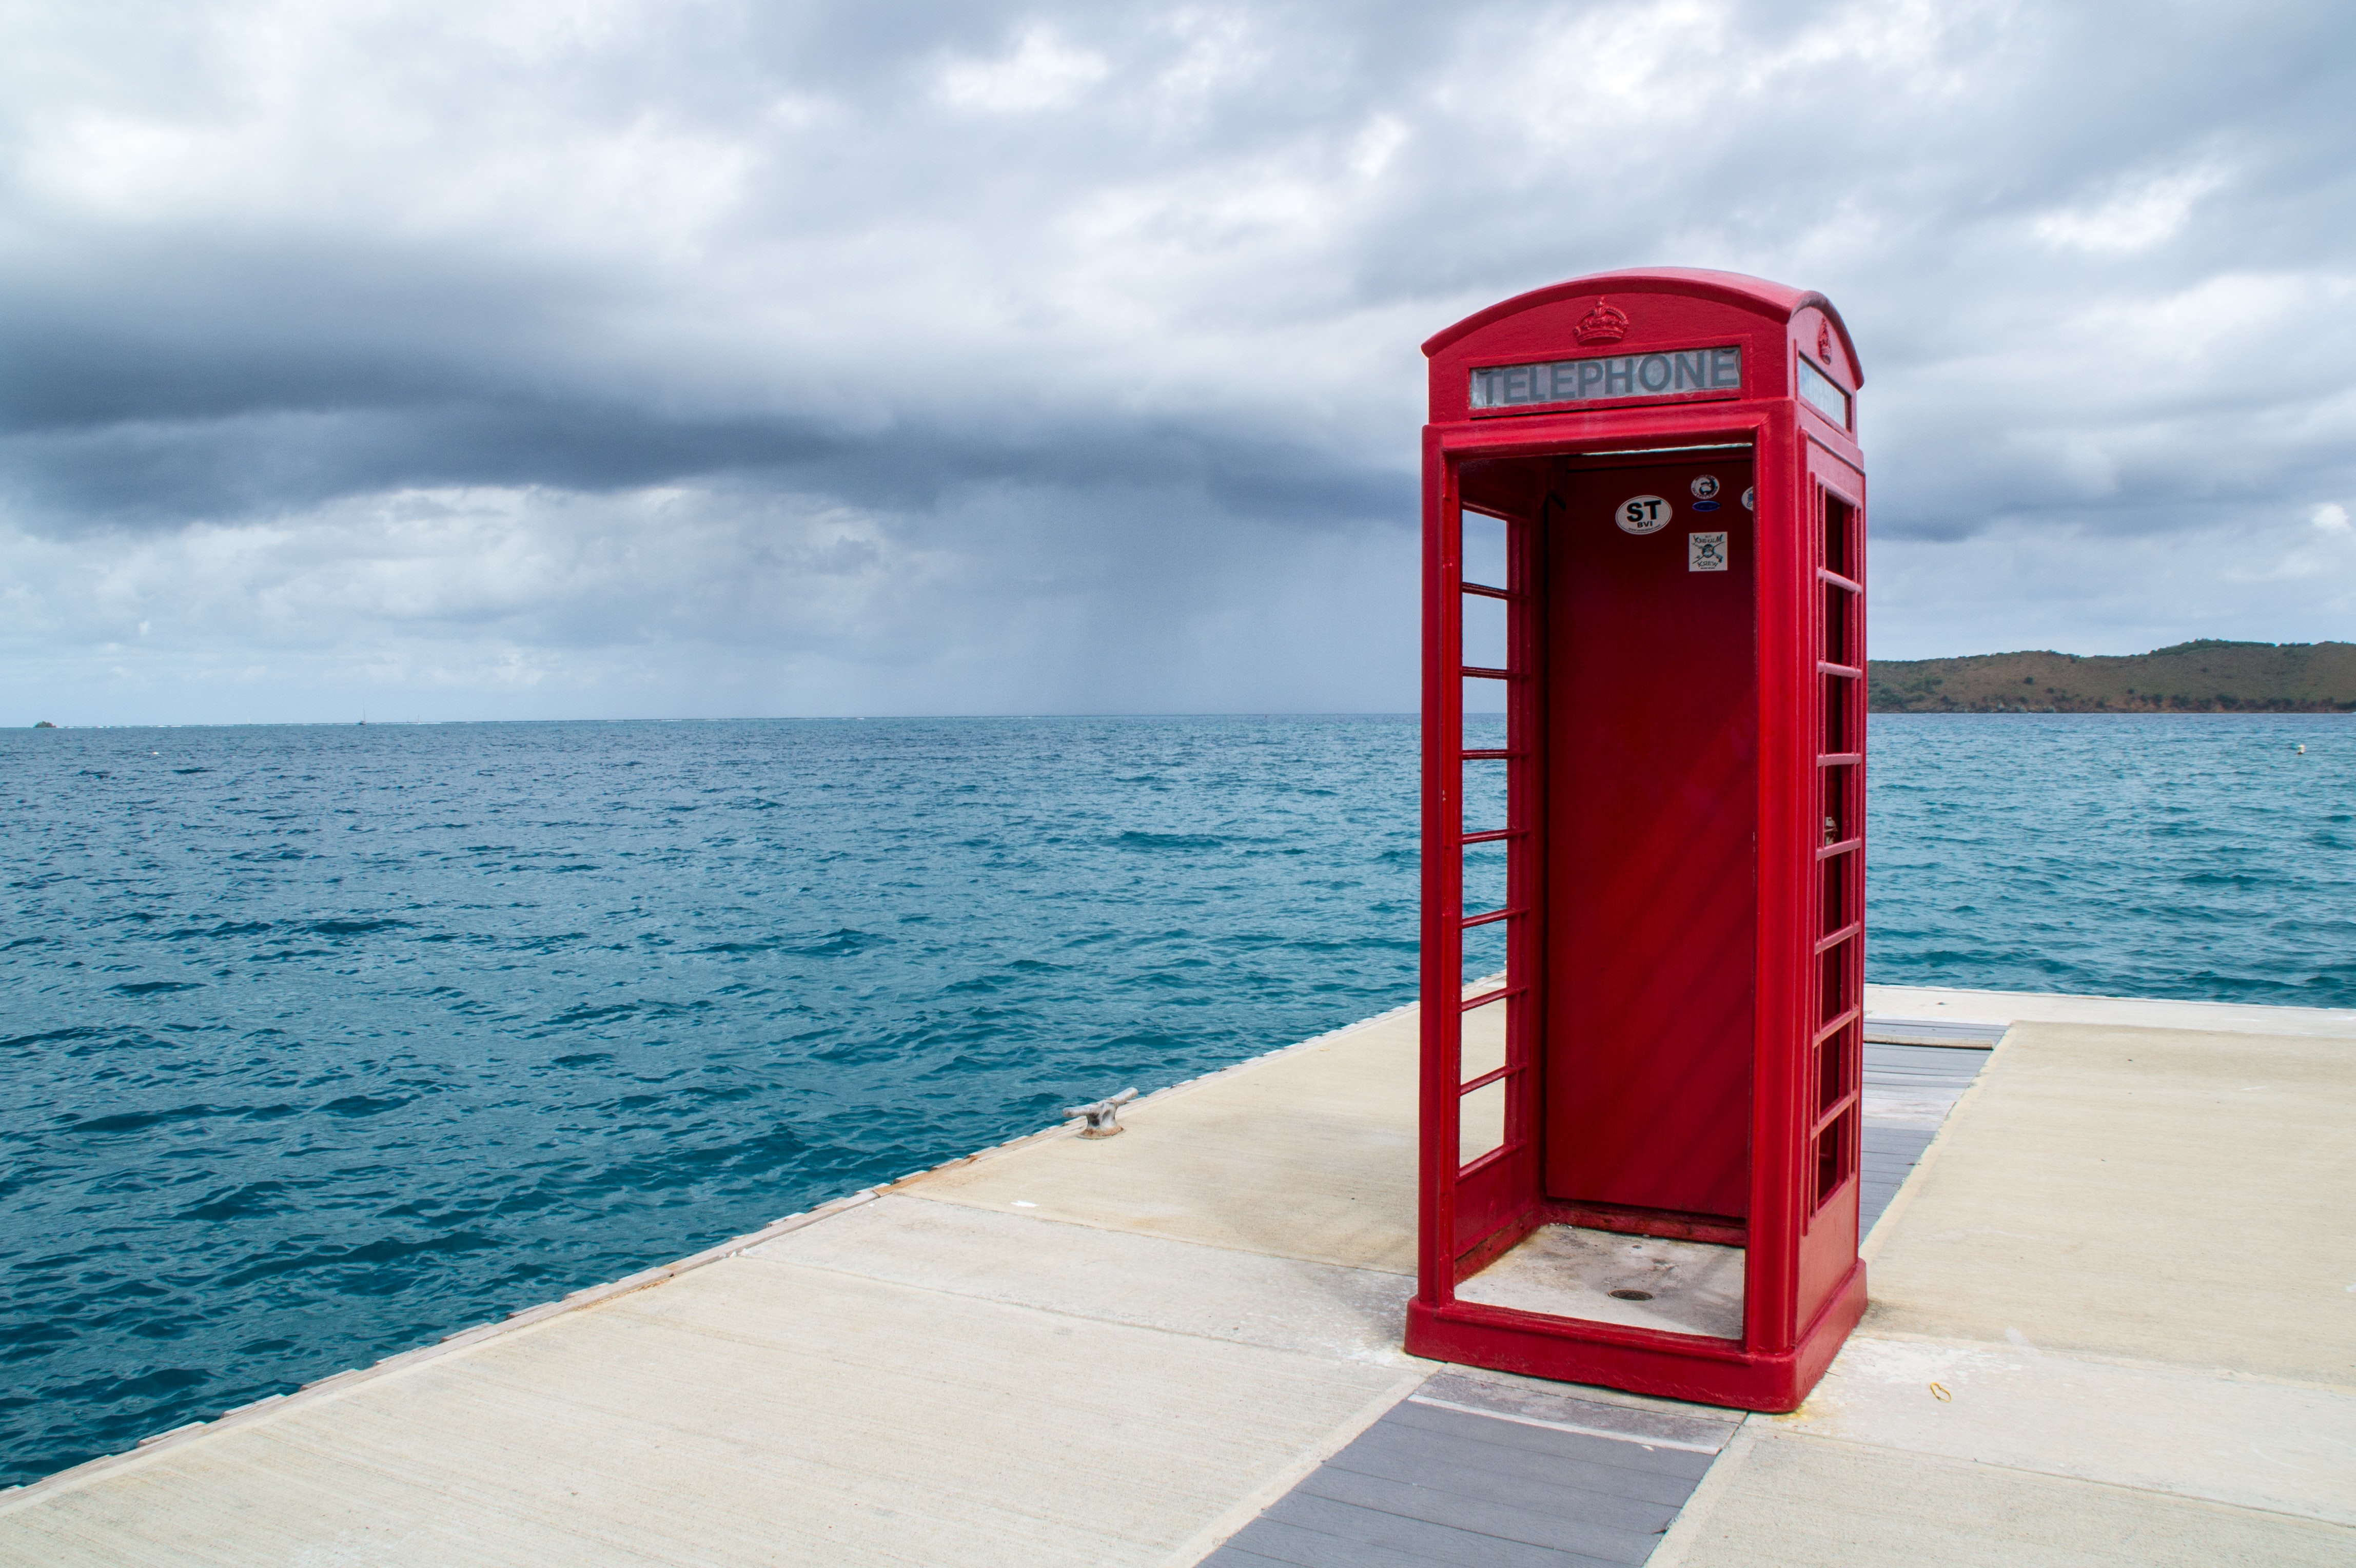 red telephone booth near body of water